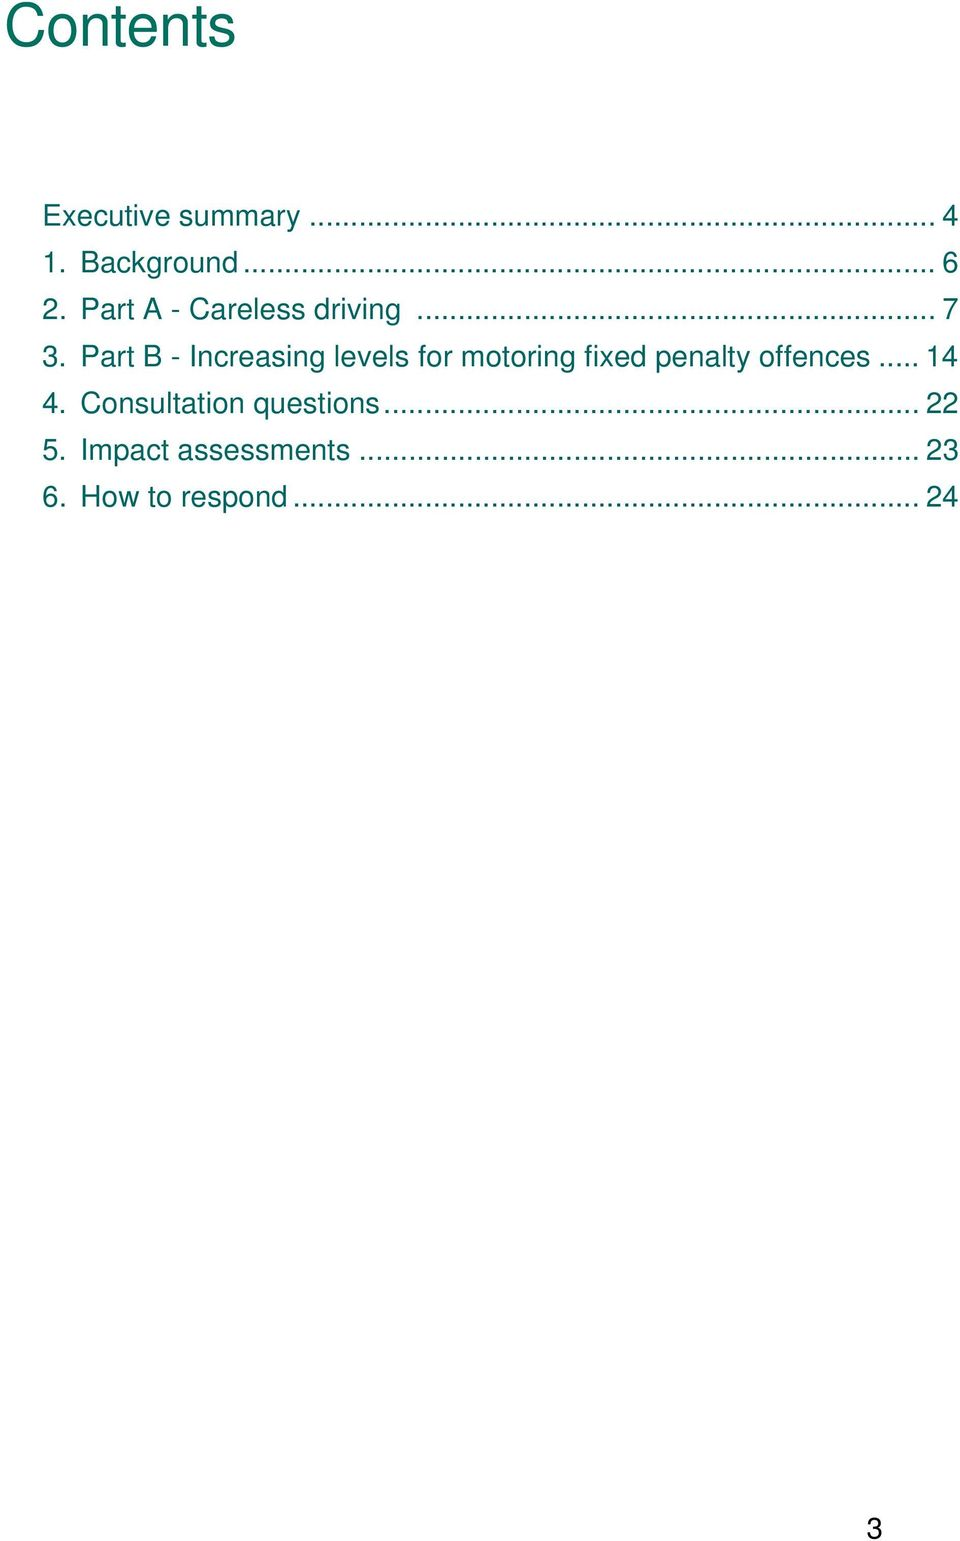 Part B - Increasing levels for motoring fixed penalty